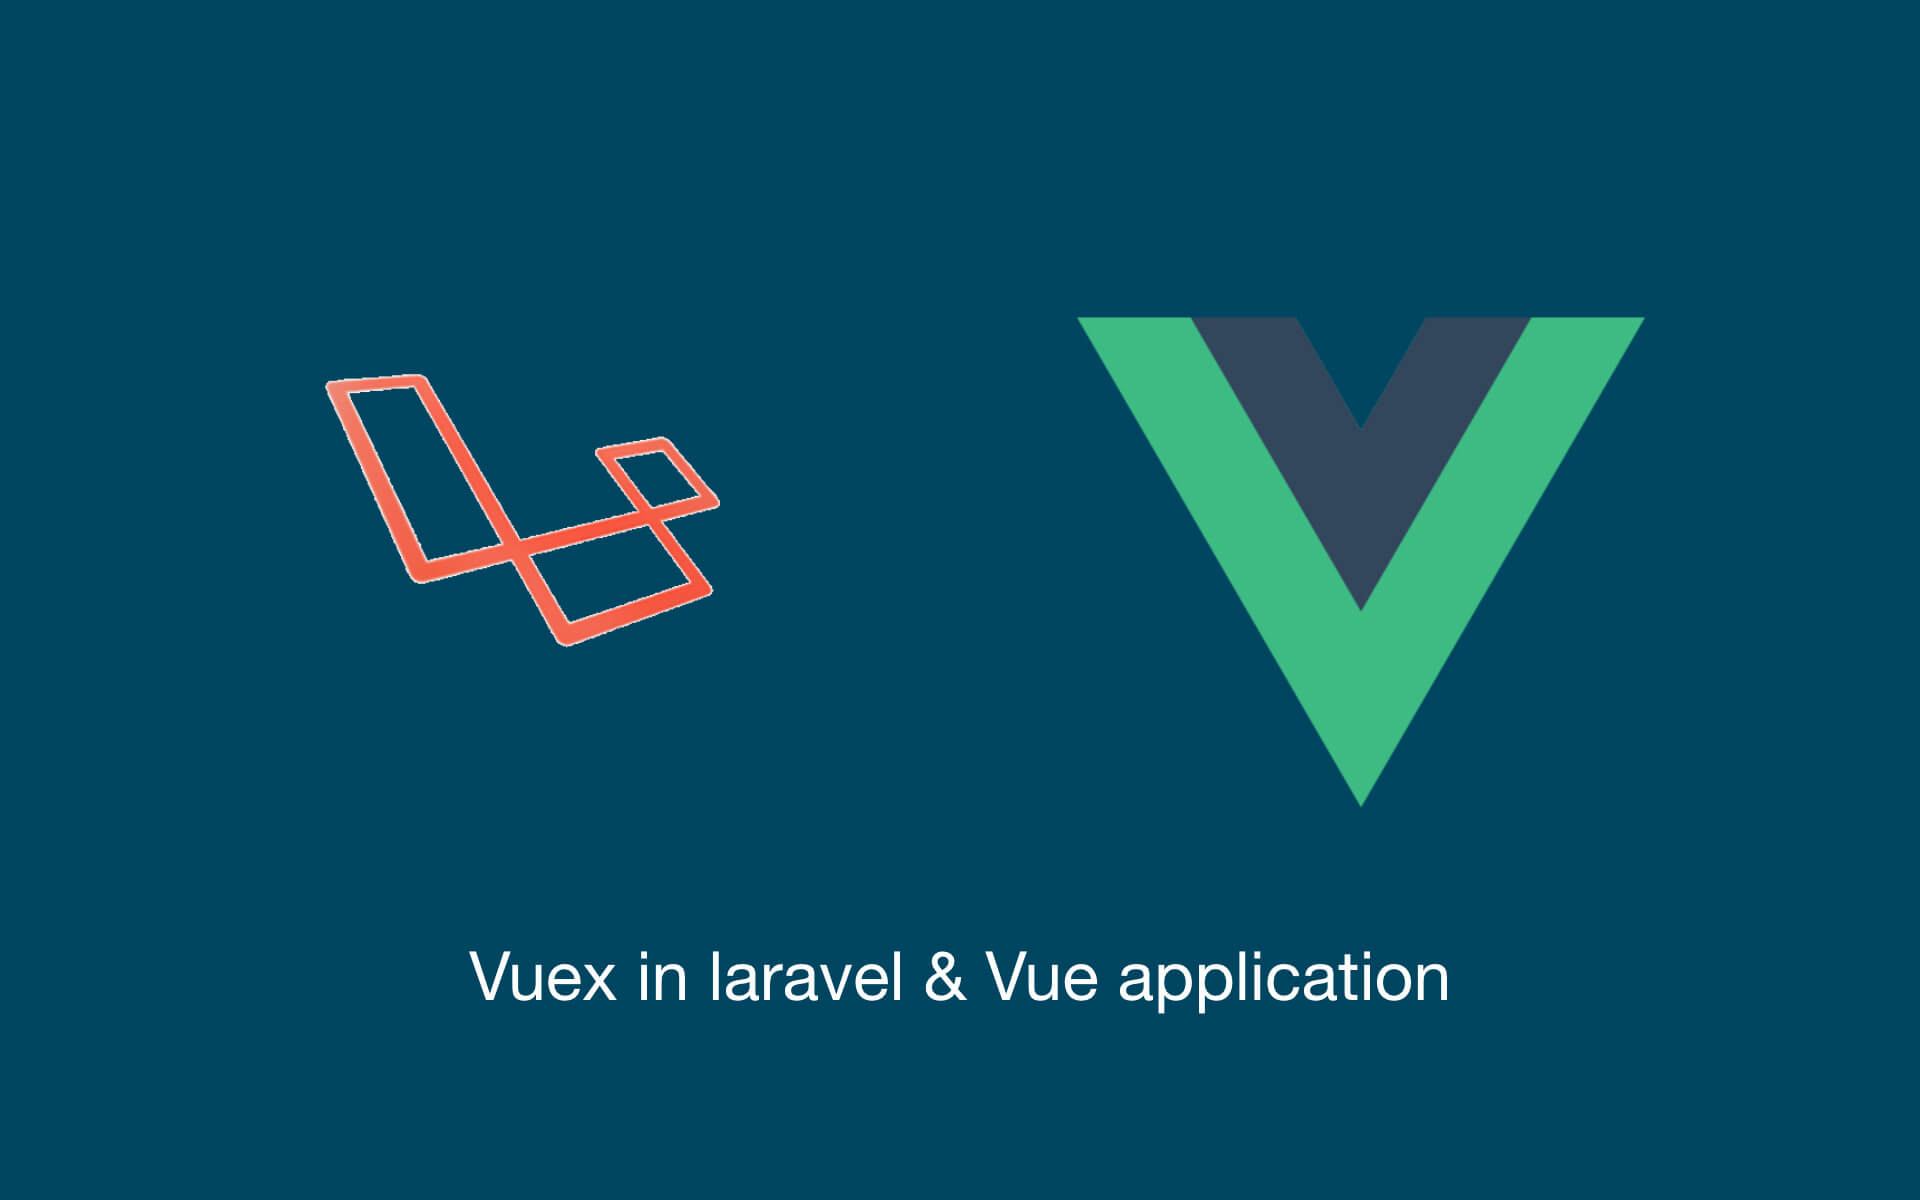 intergrating vuex in laravel and vue application